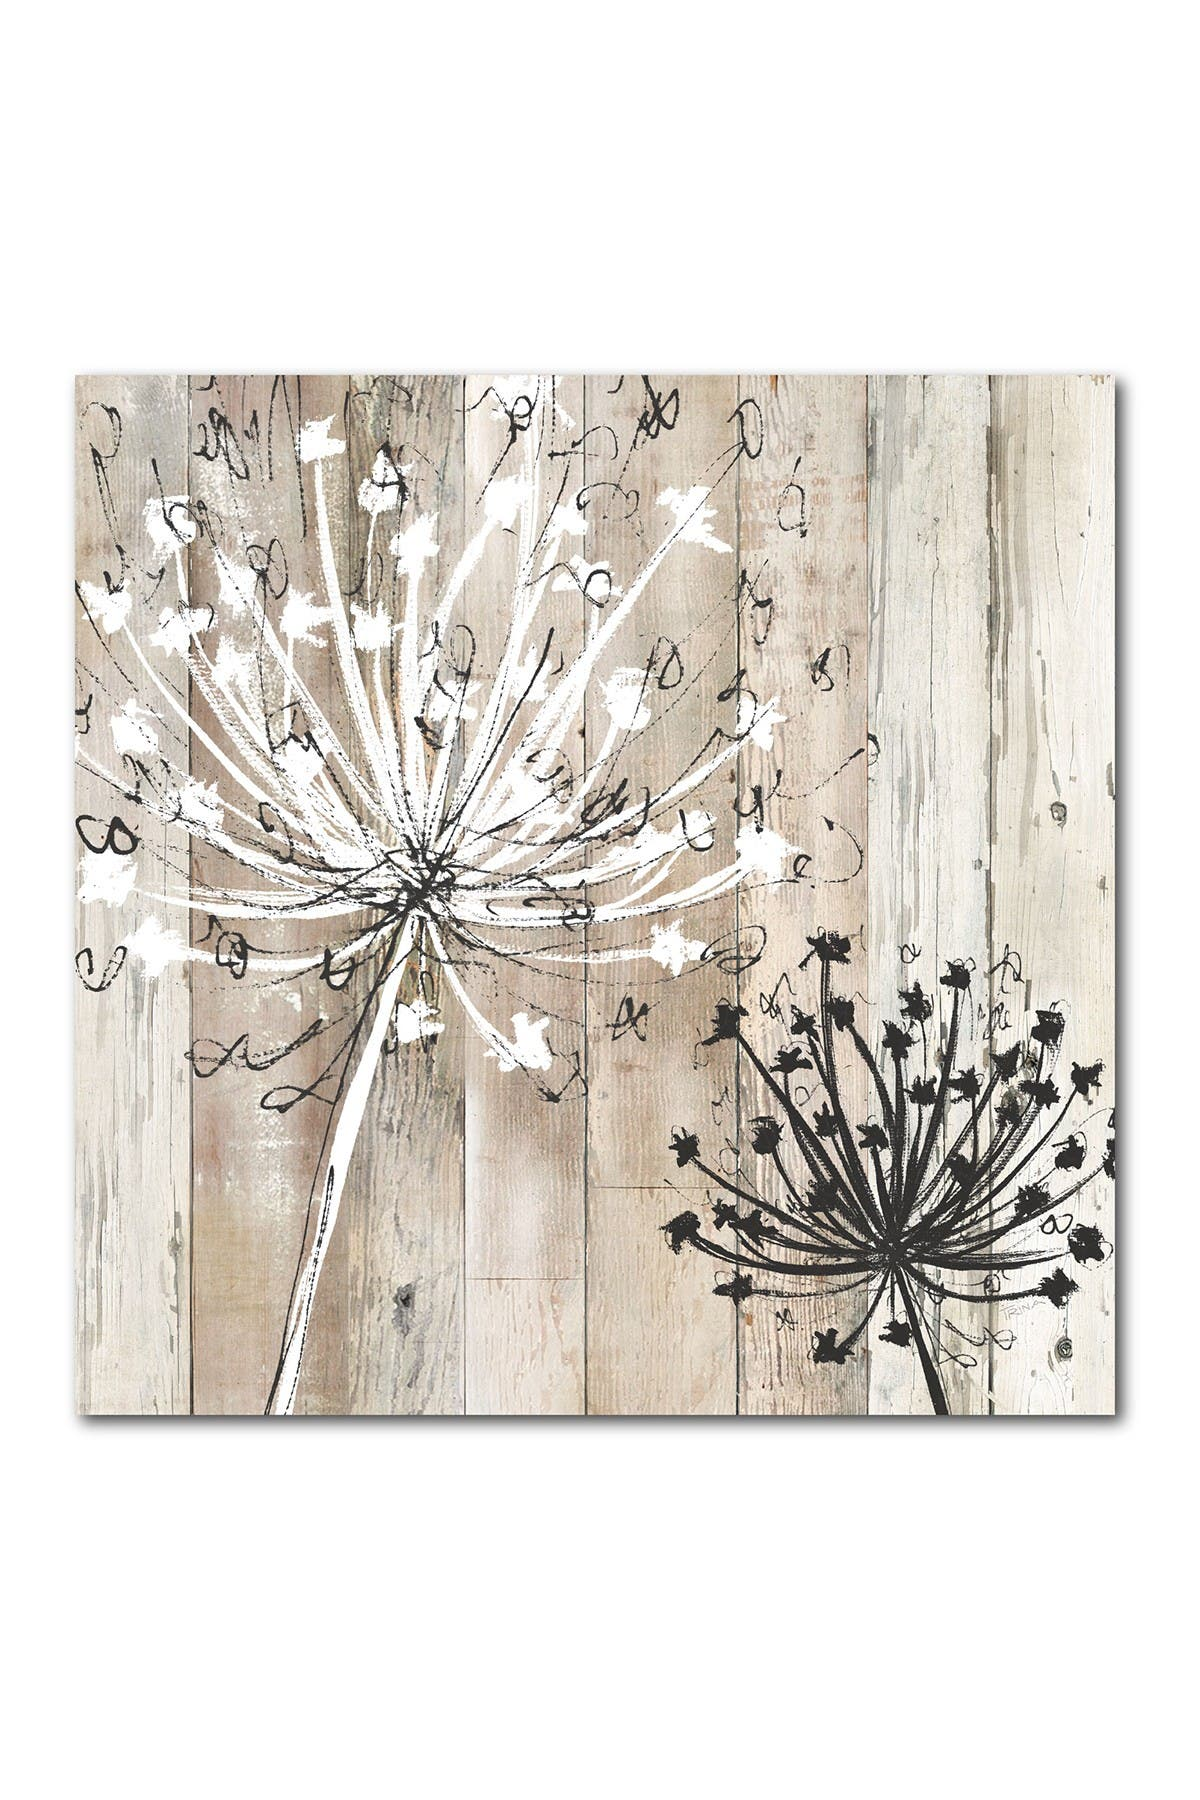 Courtside Market Farmhouse Fluff Gallery Wrapped Canvas Wall Art Nordstrom Rack